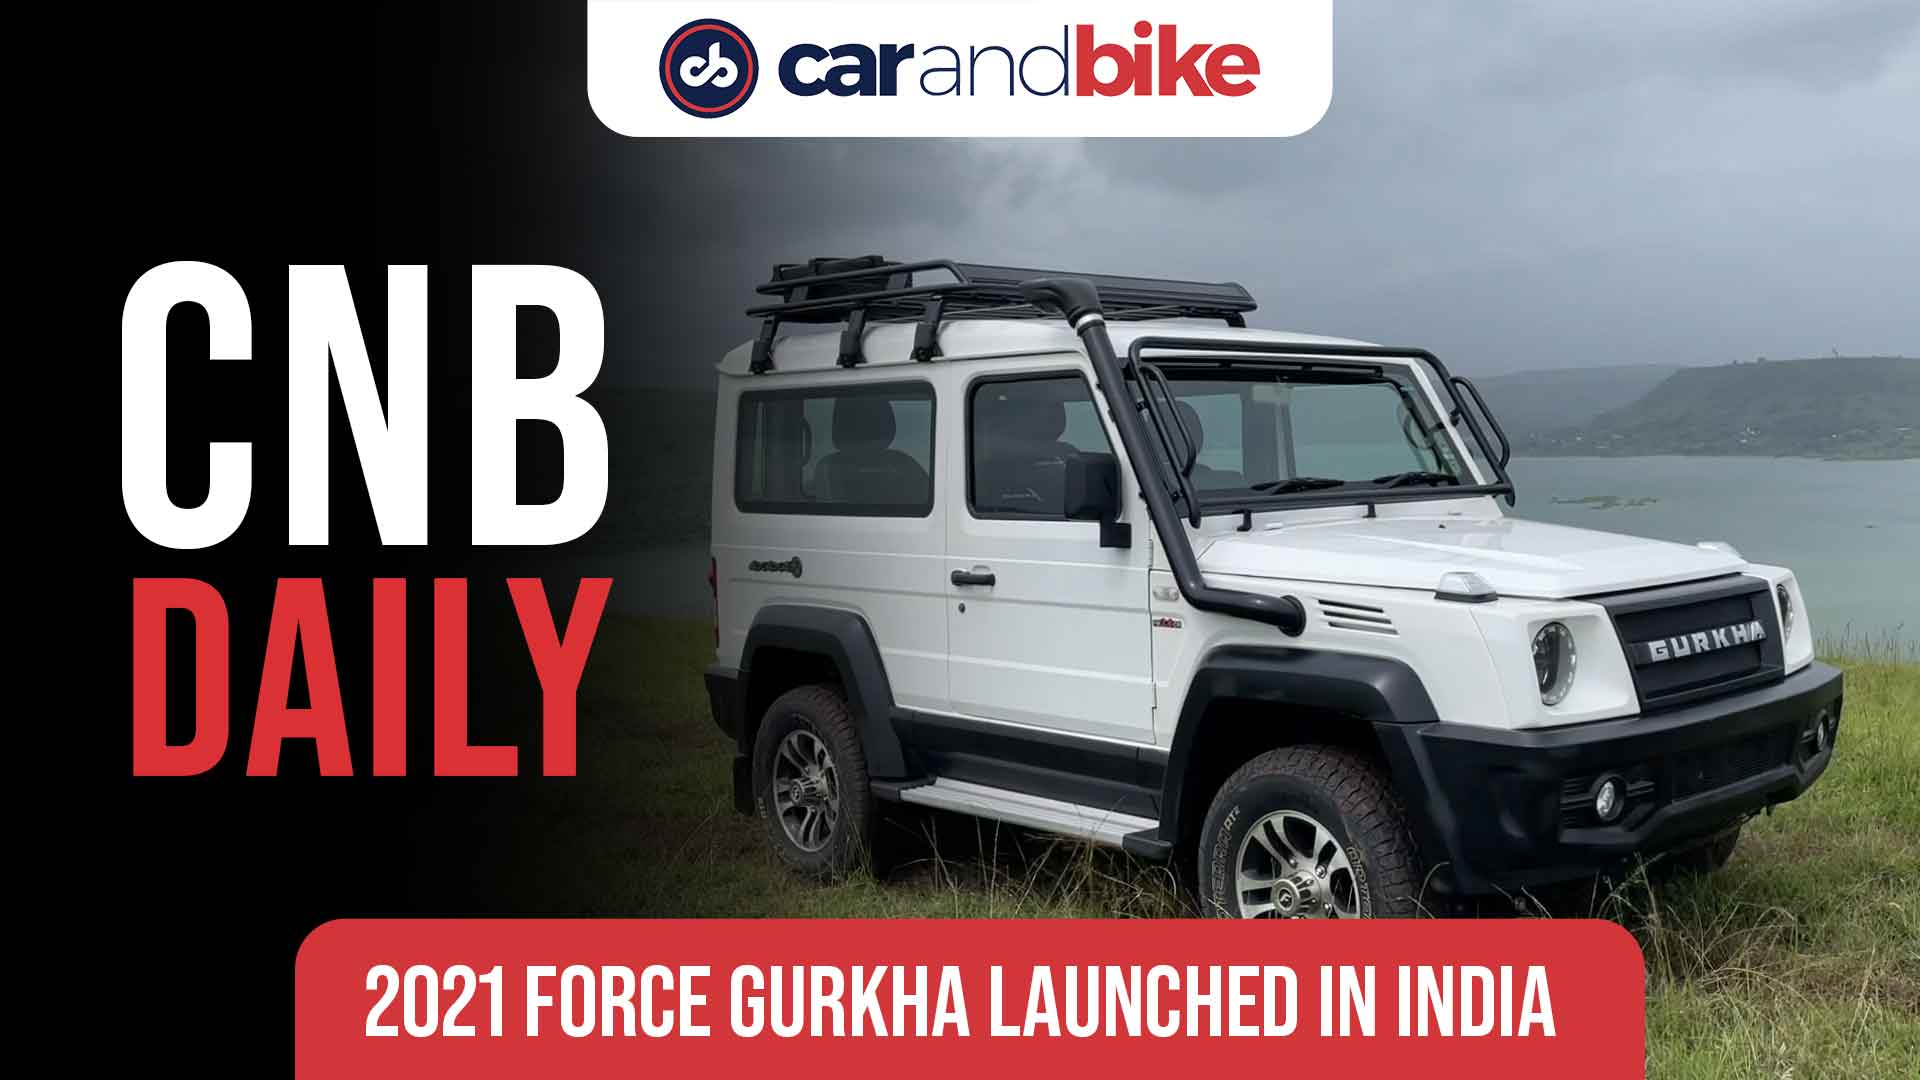 2021 Force Gurkha launched in India